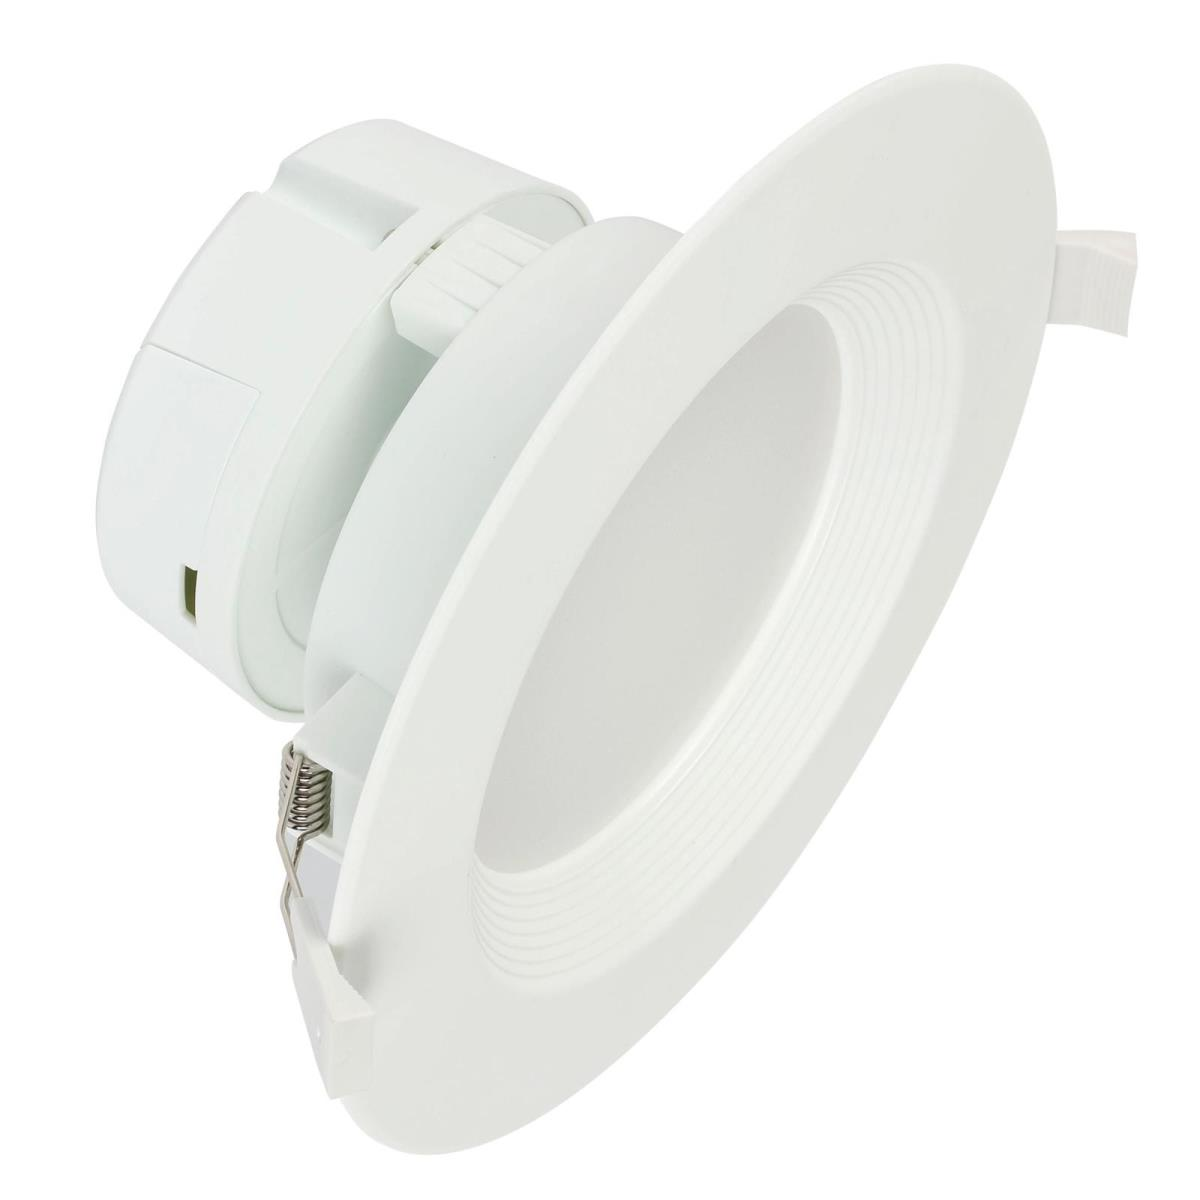 "9W Direct Wire Recessed LED Downlight 6"" Dimmable 3000K, 120 Volt, Box"